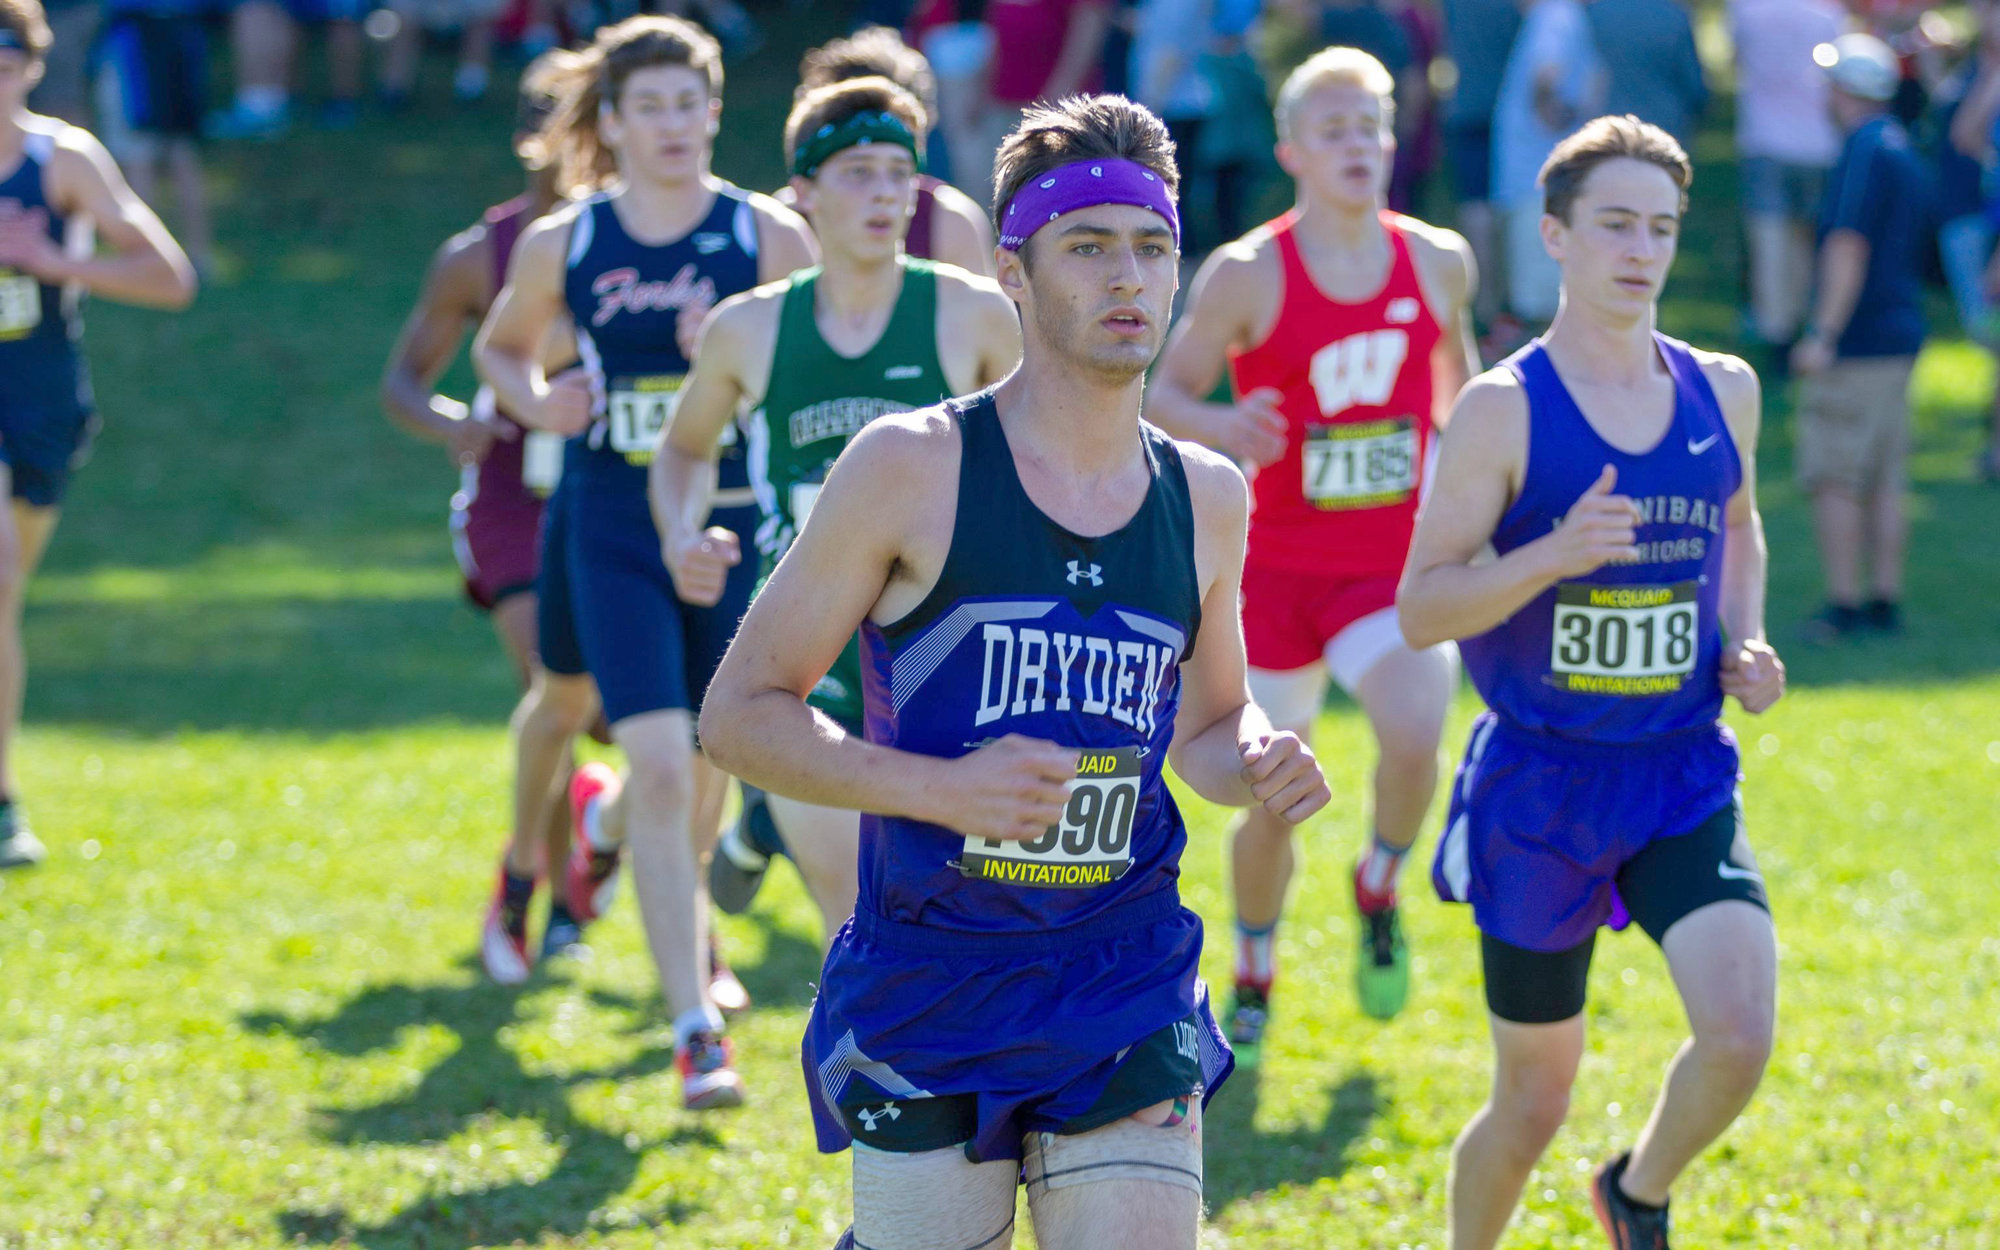 Jakob Greenwood (center) runs in the McQuaid Cross Country Invitational last season. He set Dryden's indoor 600m run record at the Section IV Classic on Jan. 4 at Cornell University with a time of 1:24.68, surpassing the previous 1:26.81.